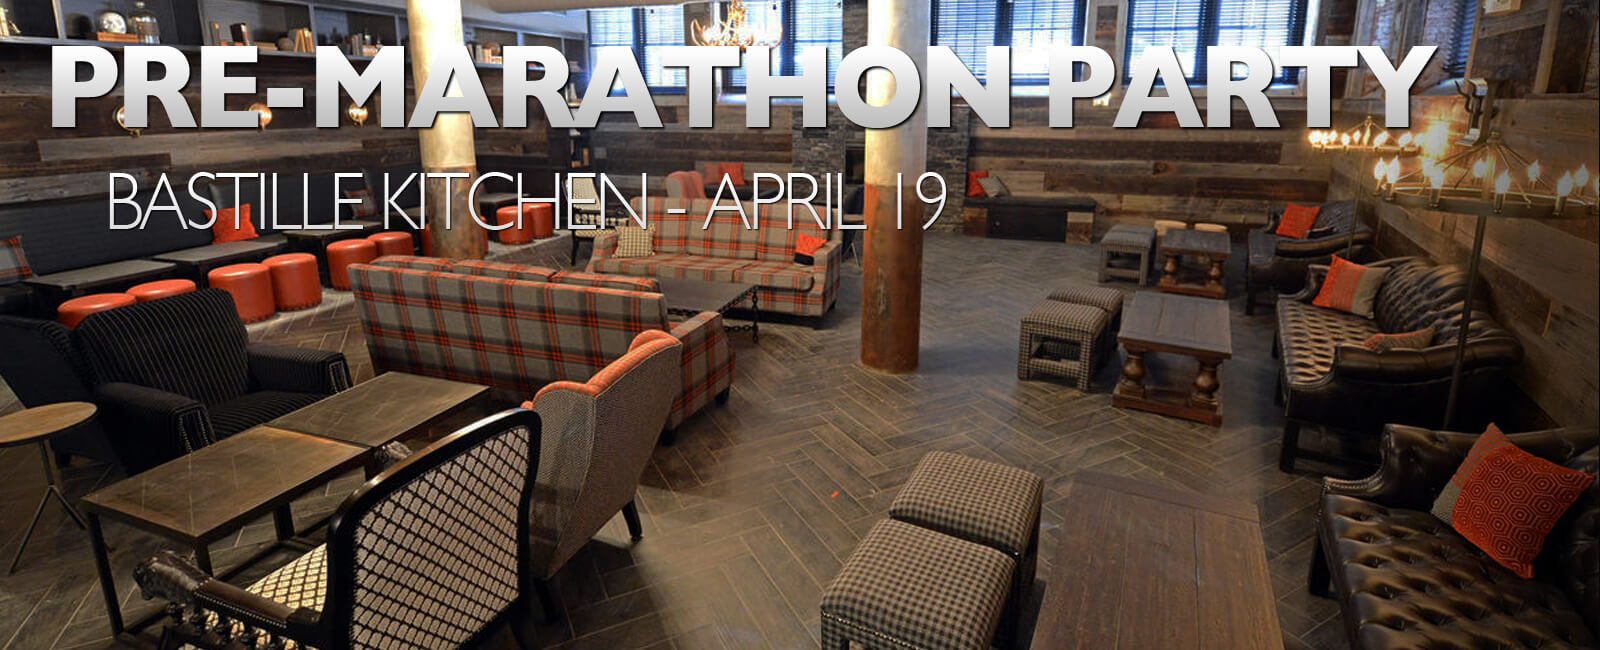 PRE-MARATHON WARM UP PARTY - APRIL 19 | WeekendPick